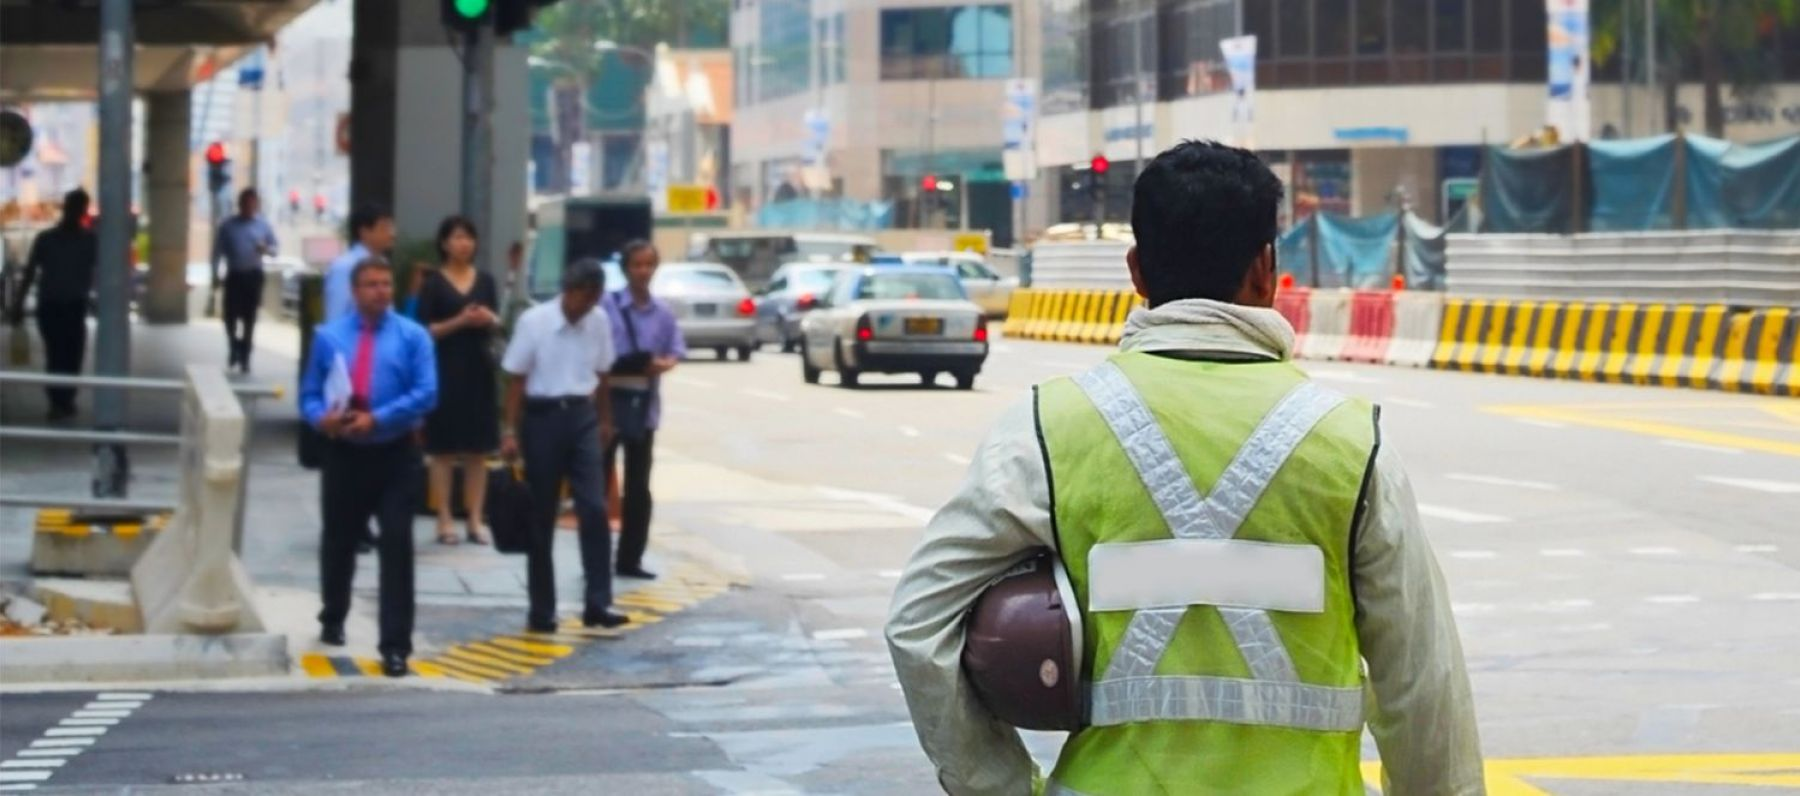 How do we improve the quality of life of migrant workers for a better Singapore for all